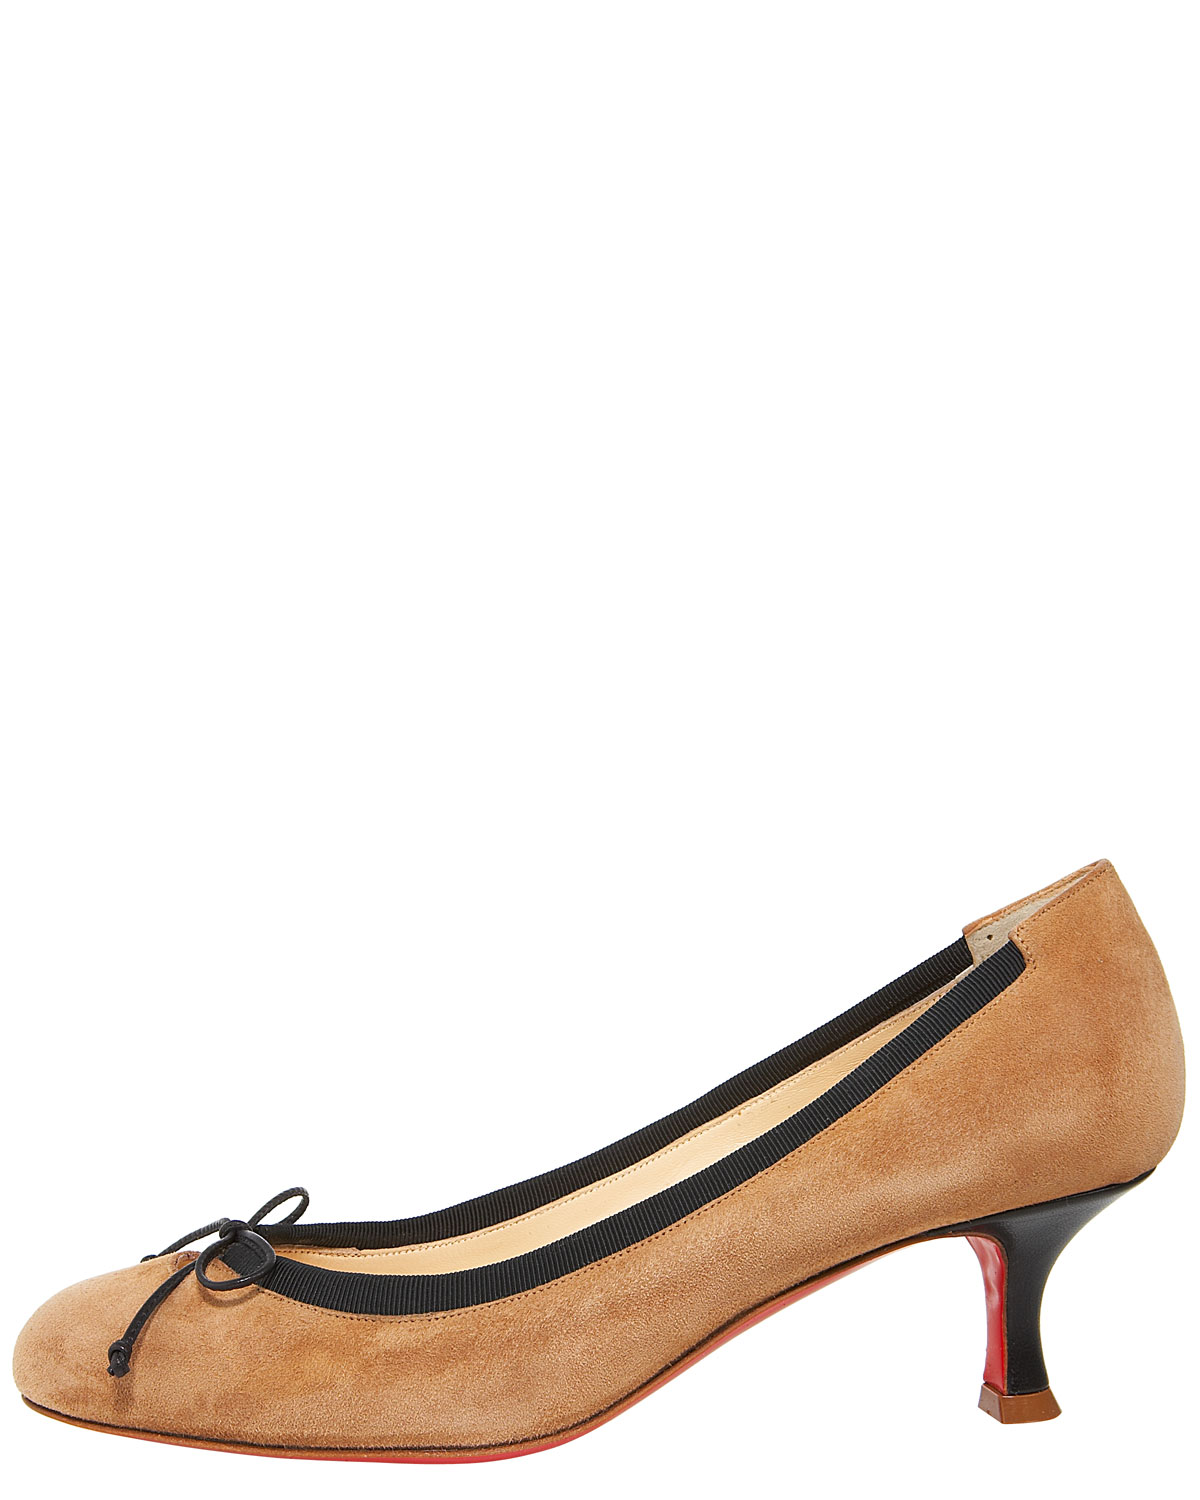 louboutin shoes - christian louboutin round-toe suede pumps, red and gold spiked ...